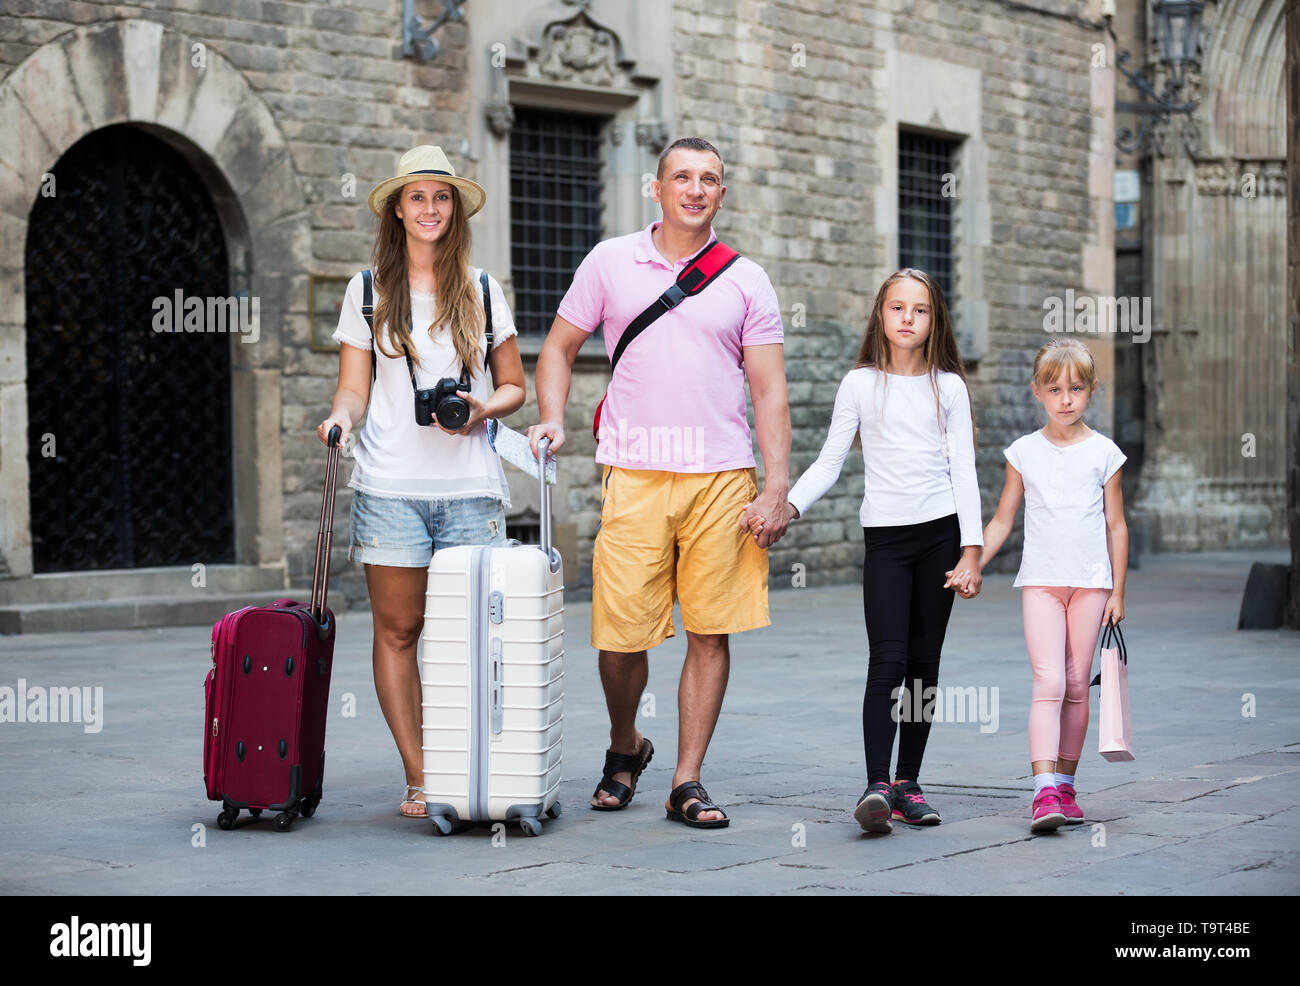 Family couple with two kids travelling together on European city, walking with baggage - Stock Image